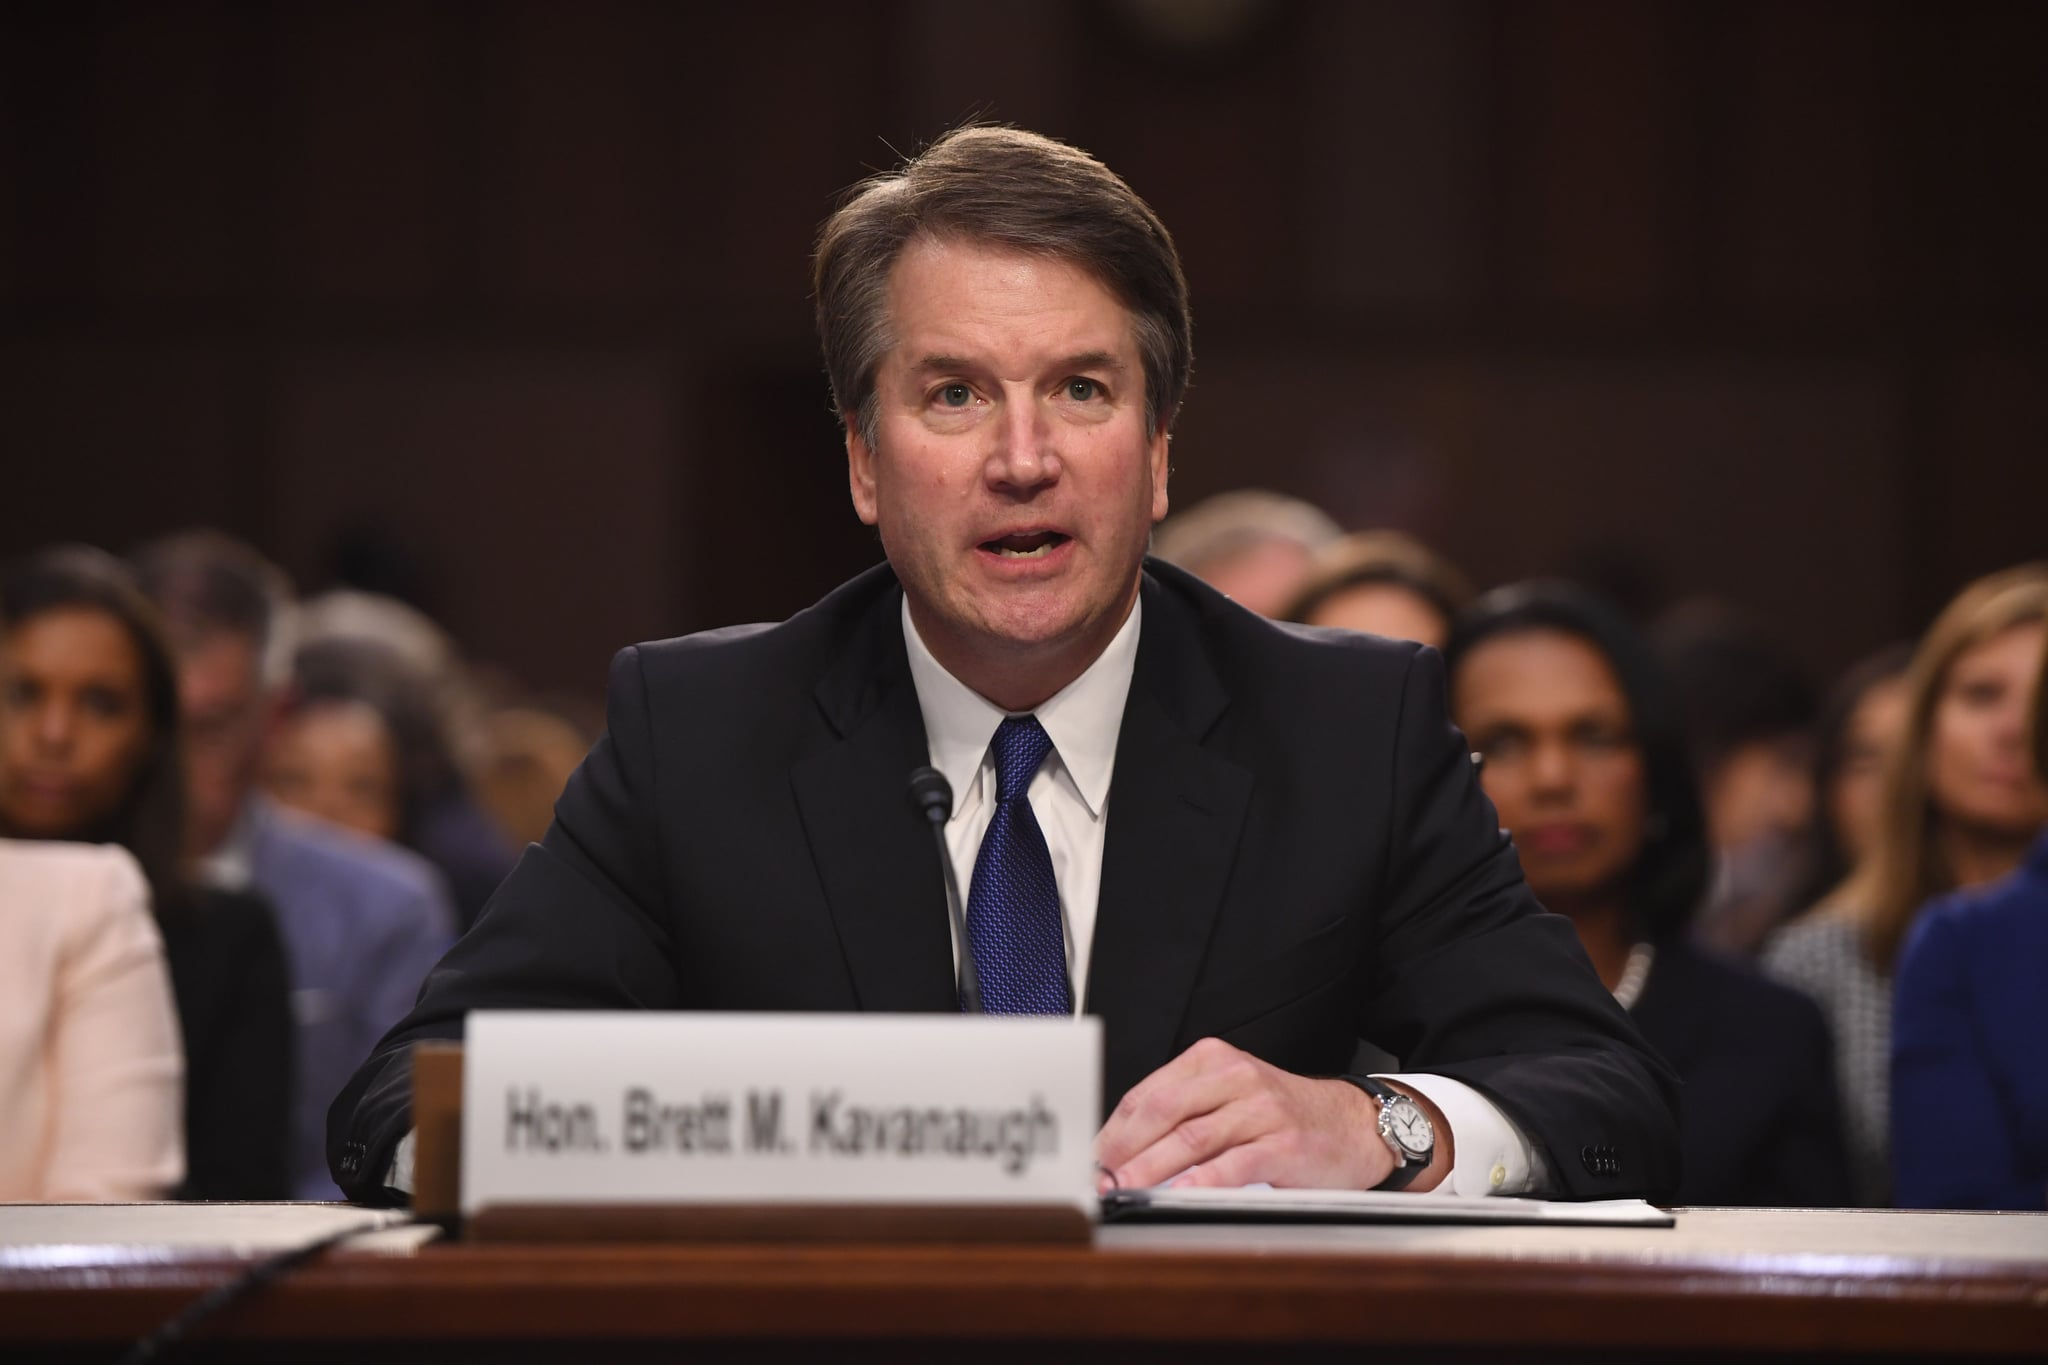 Judge Brett Kavanaugh speaks during his US Senate Judiciary Committee confirmation hearing to be an Associate Justice on the US Supreme Court, on Capitol Hill in Washington, DC, September 4, 2018. - President Donald Trump's newest Supreme Court nominee Brett Kavanaugh is expected to face punishing questioning from Democrats this week over his endorsement of presidential immunity and his opposition to abortion. (Photo by SAUL LOEB / AFP)        (Photo credit should read SAUL LOEB/AFP/Getty Images)